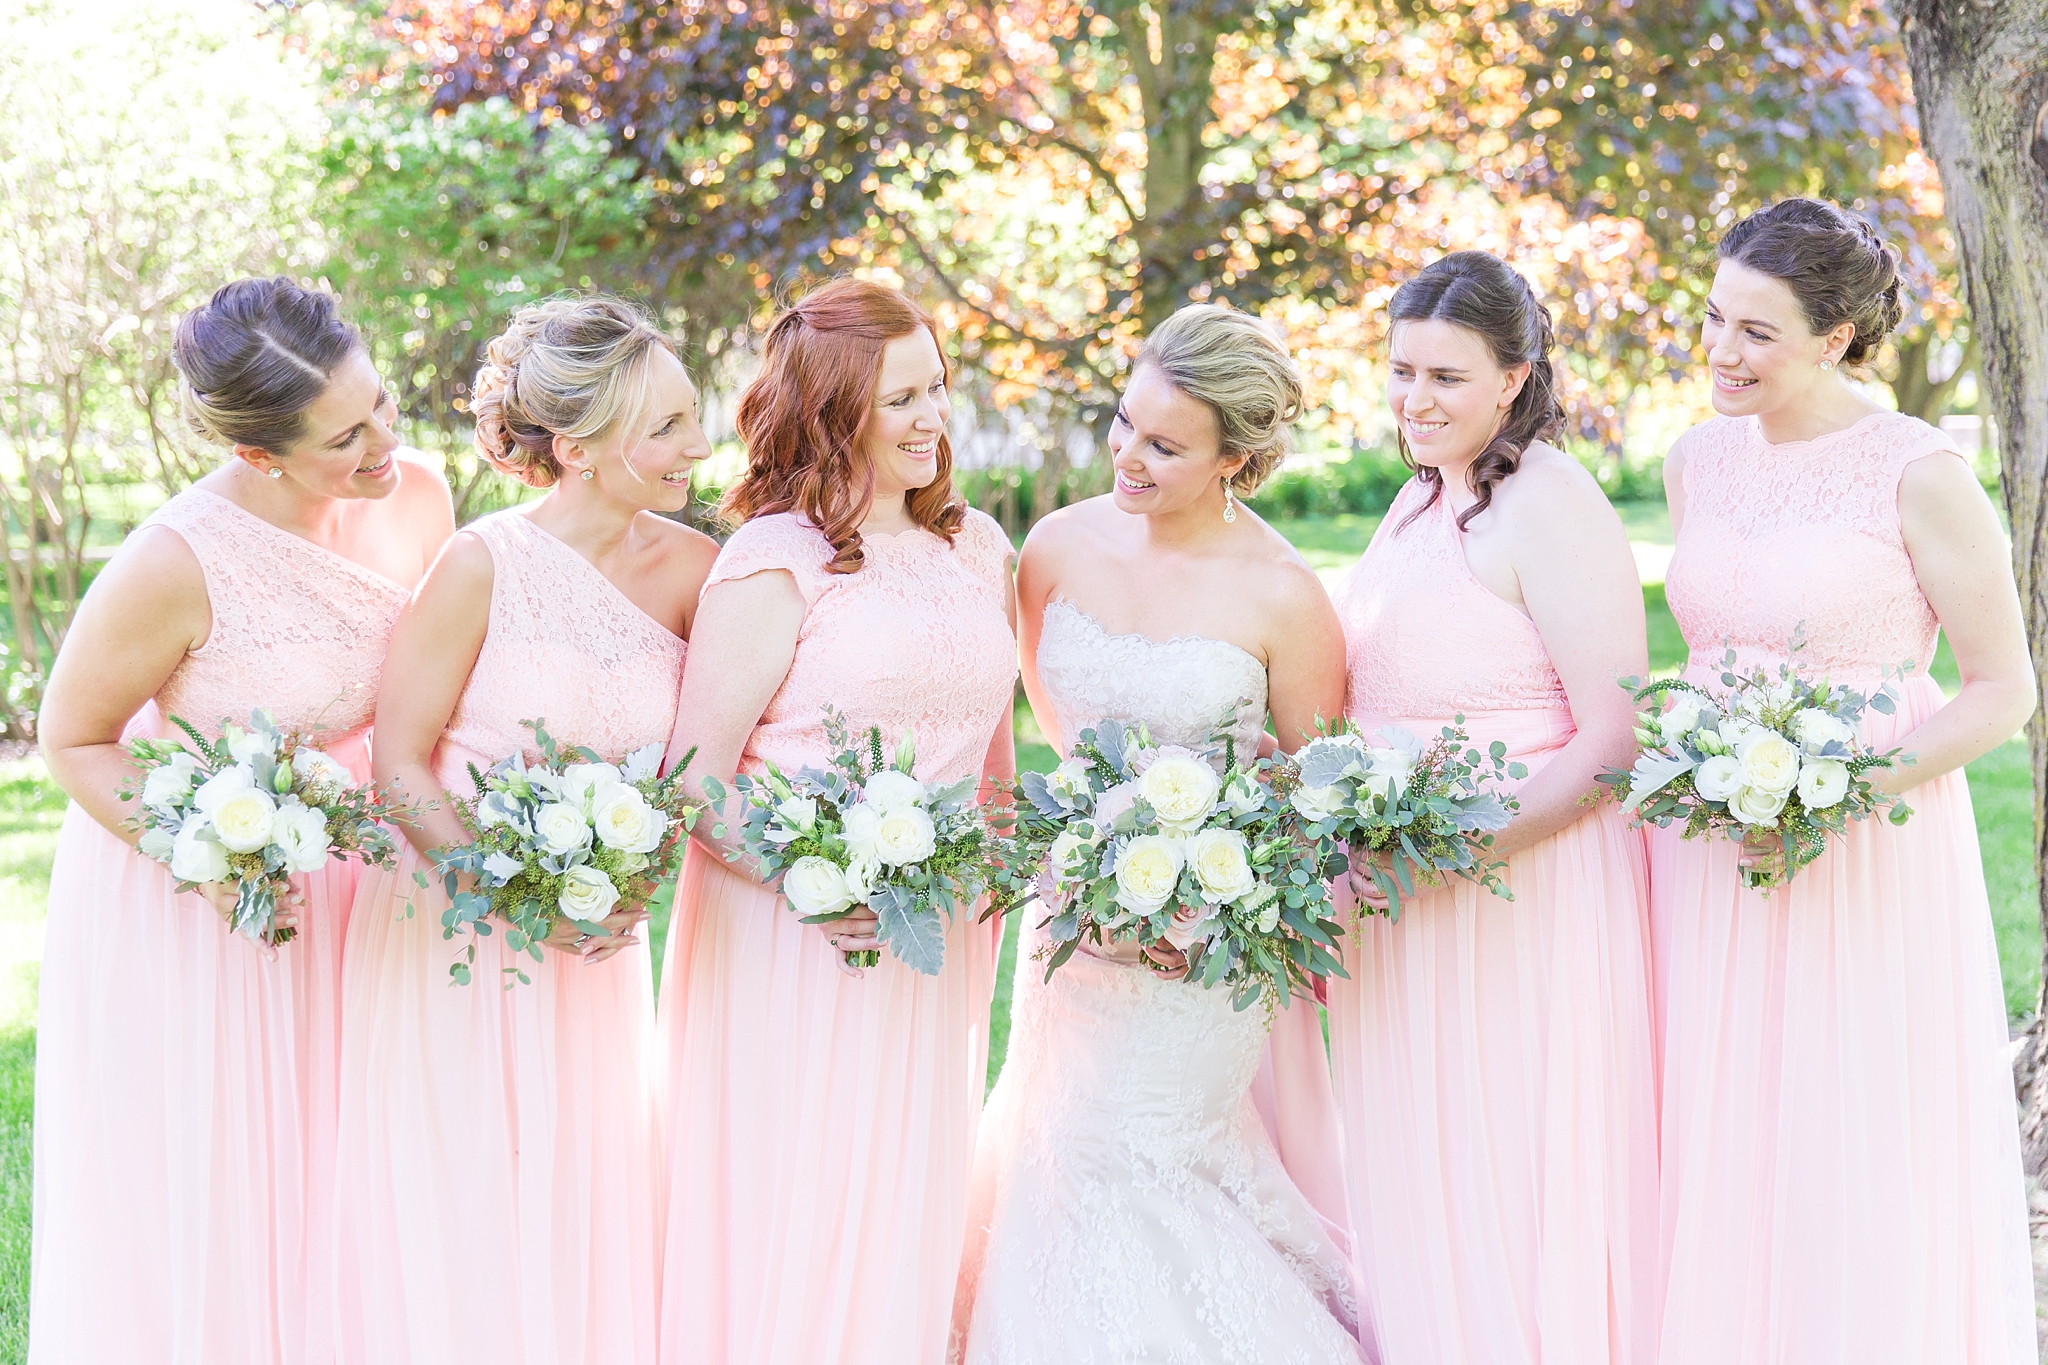 fun-candid-laid-back-wedding-photos-at-wellers-carriage-house-in-saline-michigan-and-at-the-eagle-crest-golf-resort-by-courtney-carolyn-photography_0029.jpg